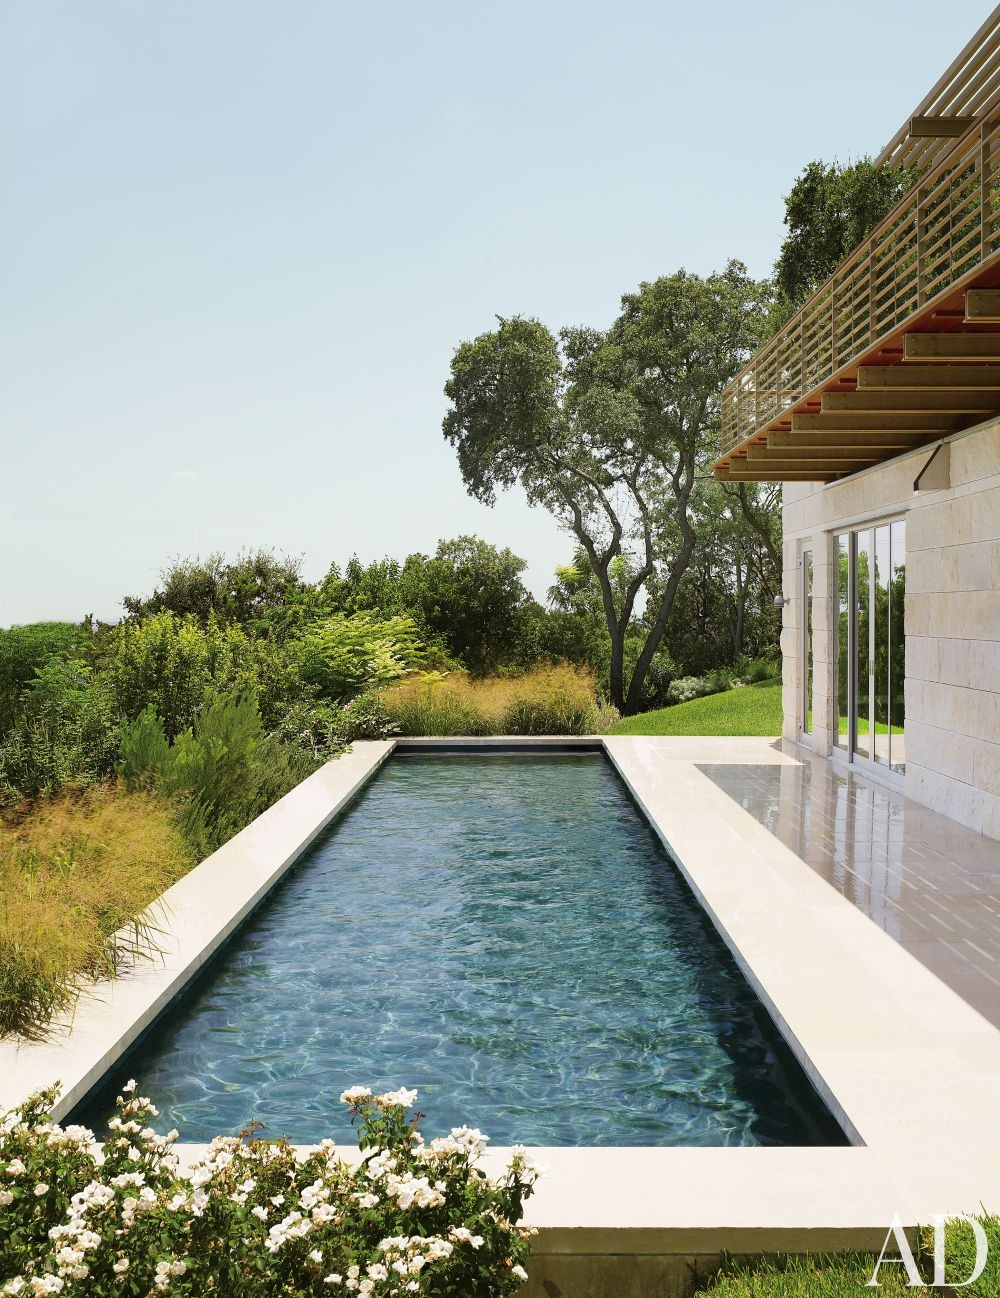 Modern Pool by Terry Hunziker Inc. and Lake | Flato Architects in Austin, Texas